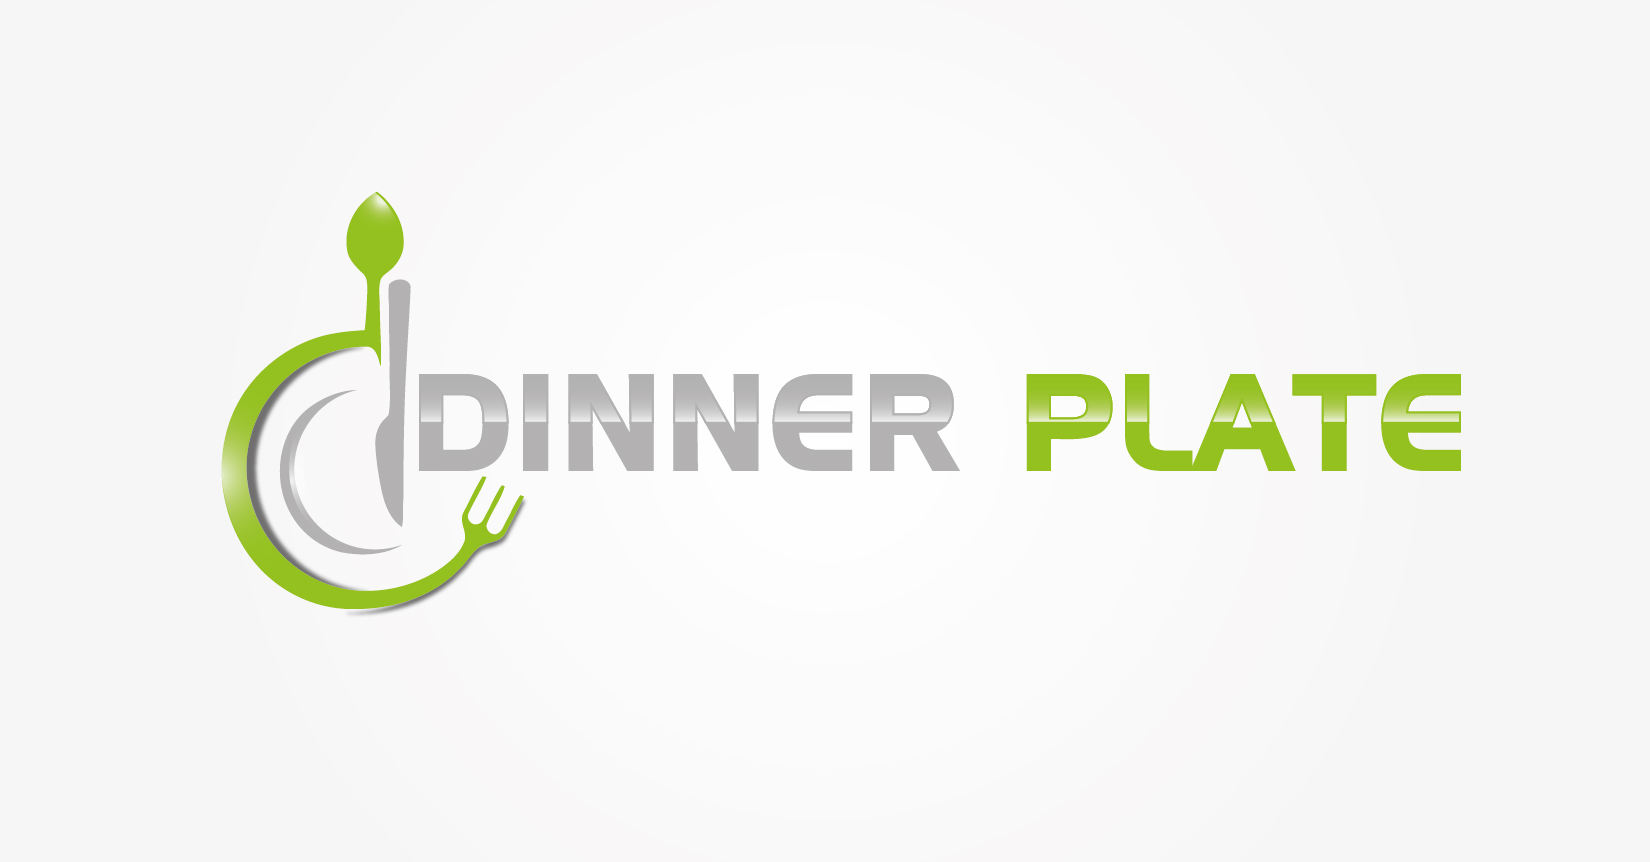 Logo Design by VENTSISLAV KOVACHEV - Entry No. 13 in the Logo Design Contest Imaginative Logo Design for Dinner Plate.